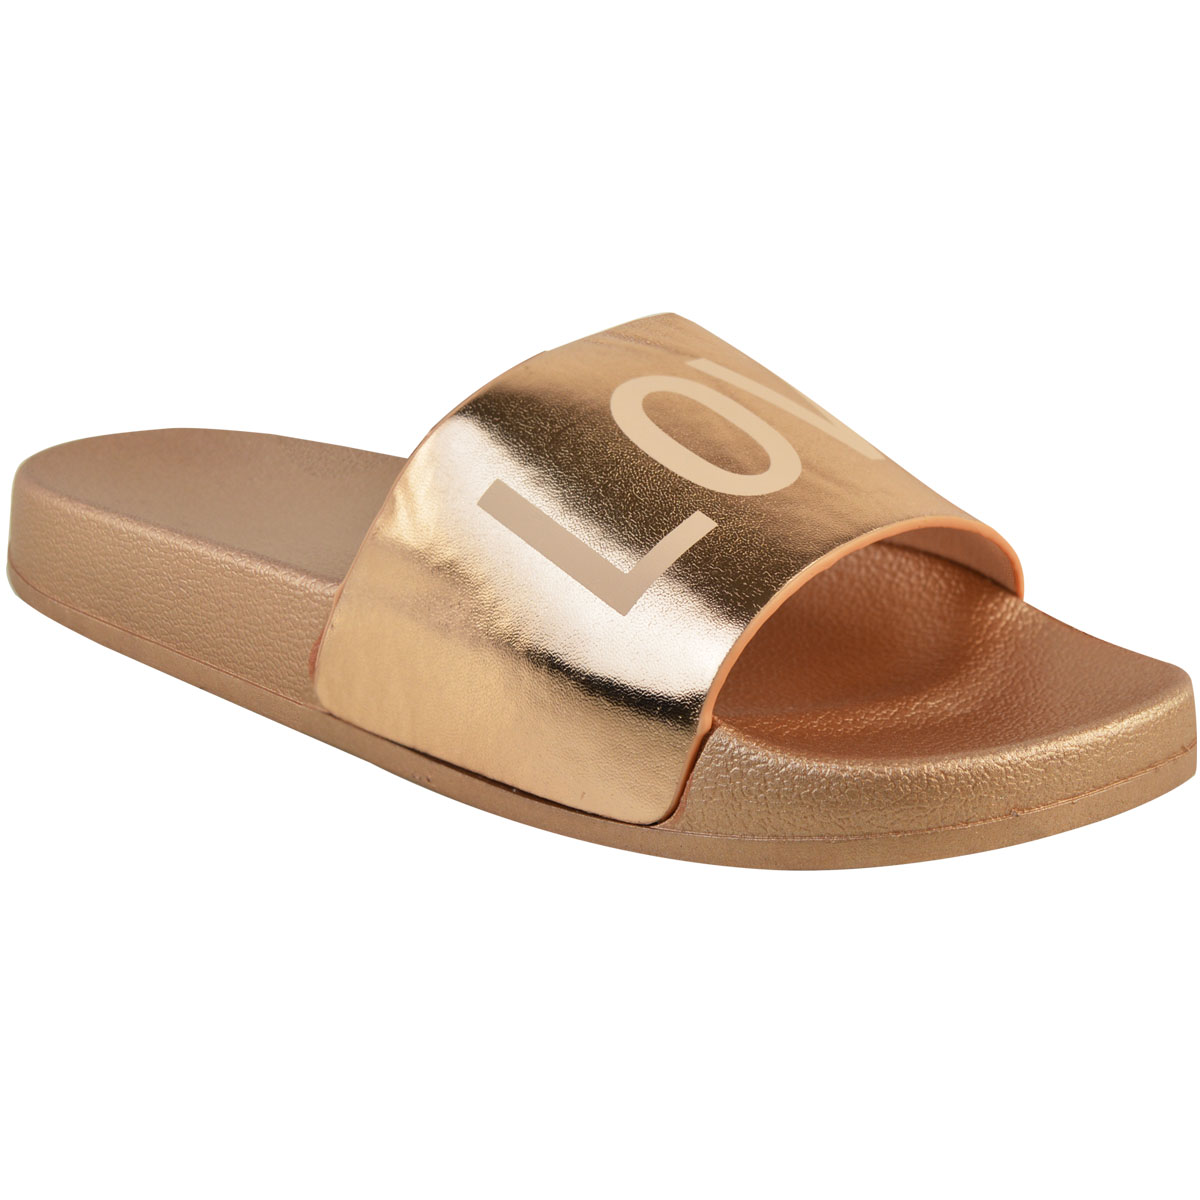 Love Sliders Womens Flat Summer Slip On Mules Size Slippers Sandals Shoes Ladies Size Mules 523f88